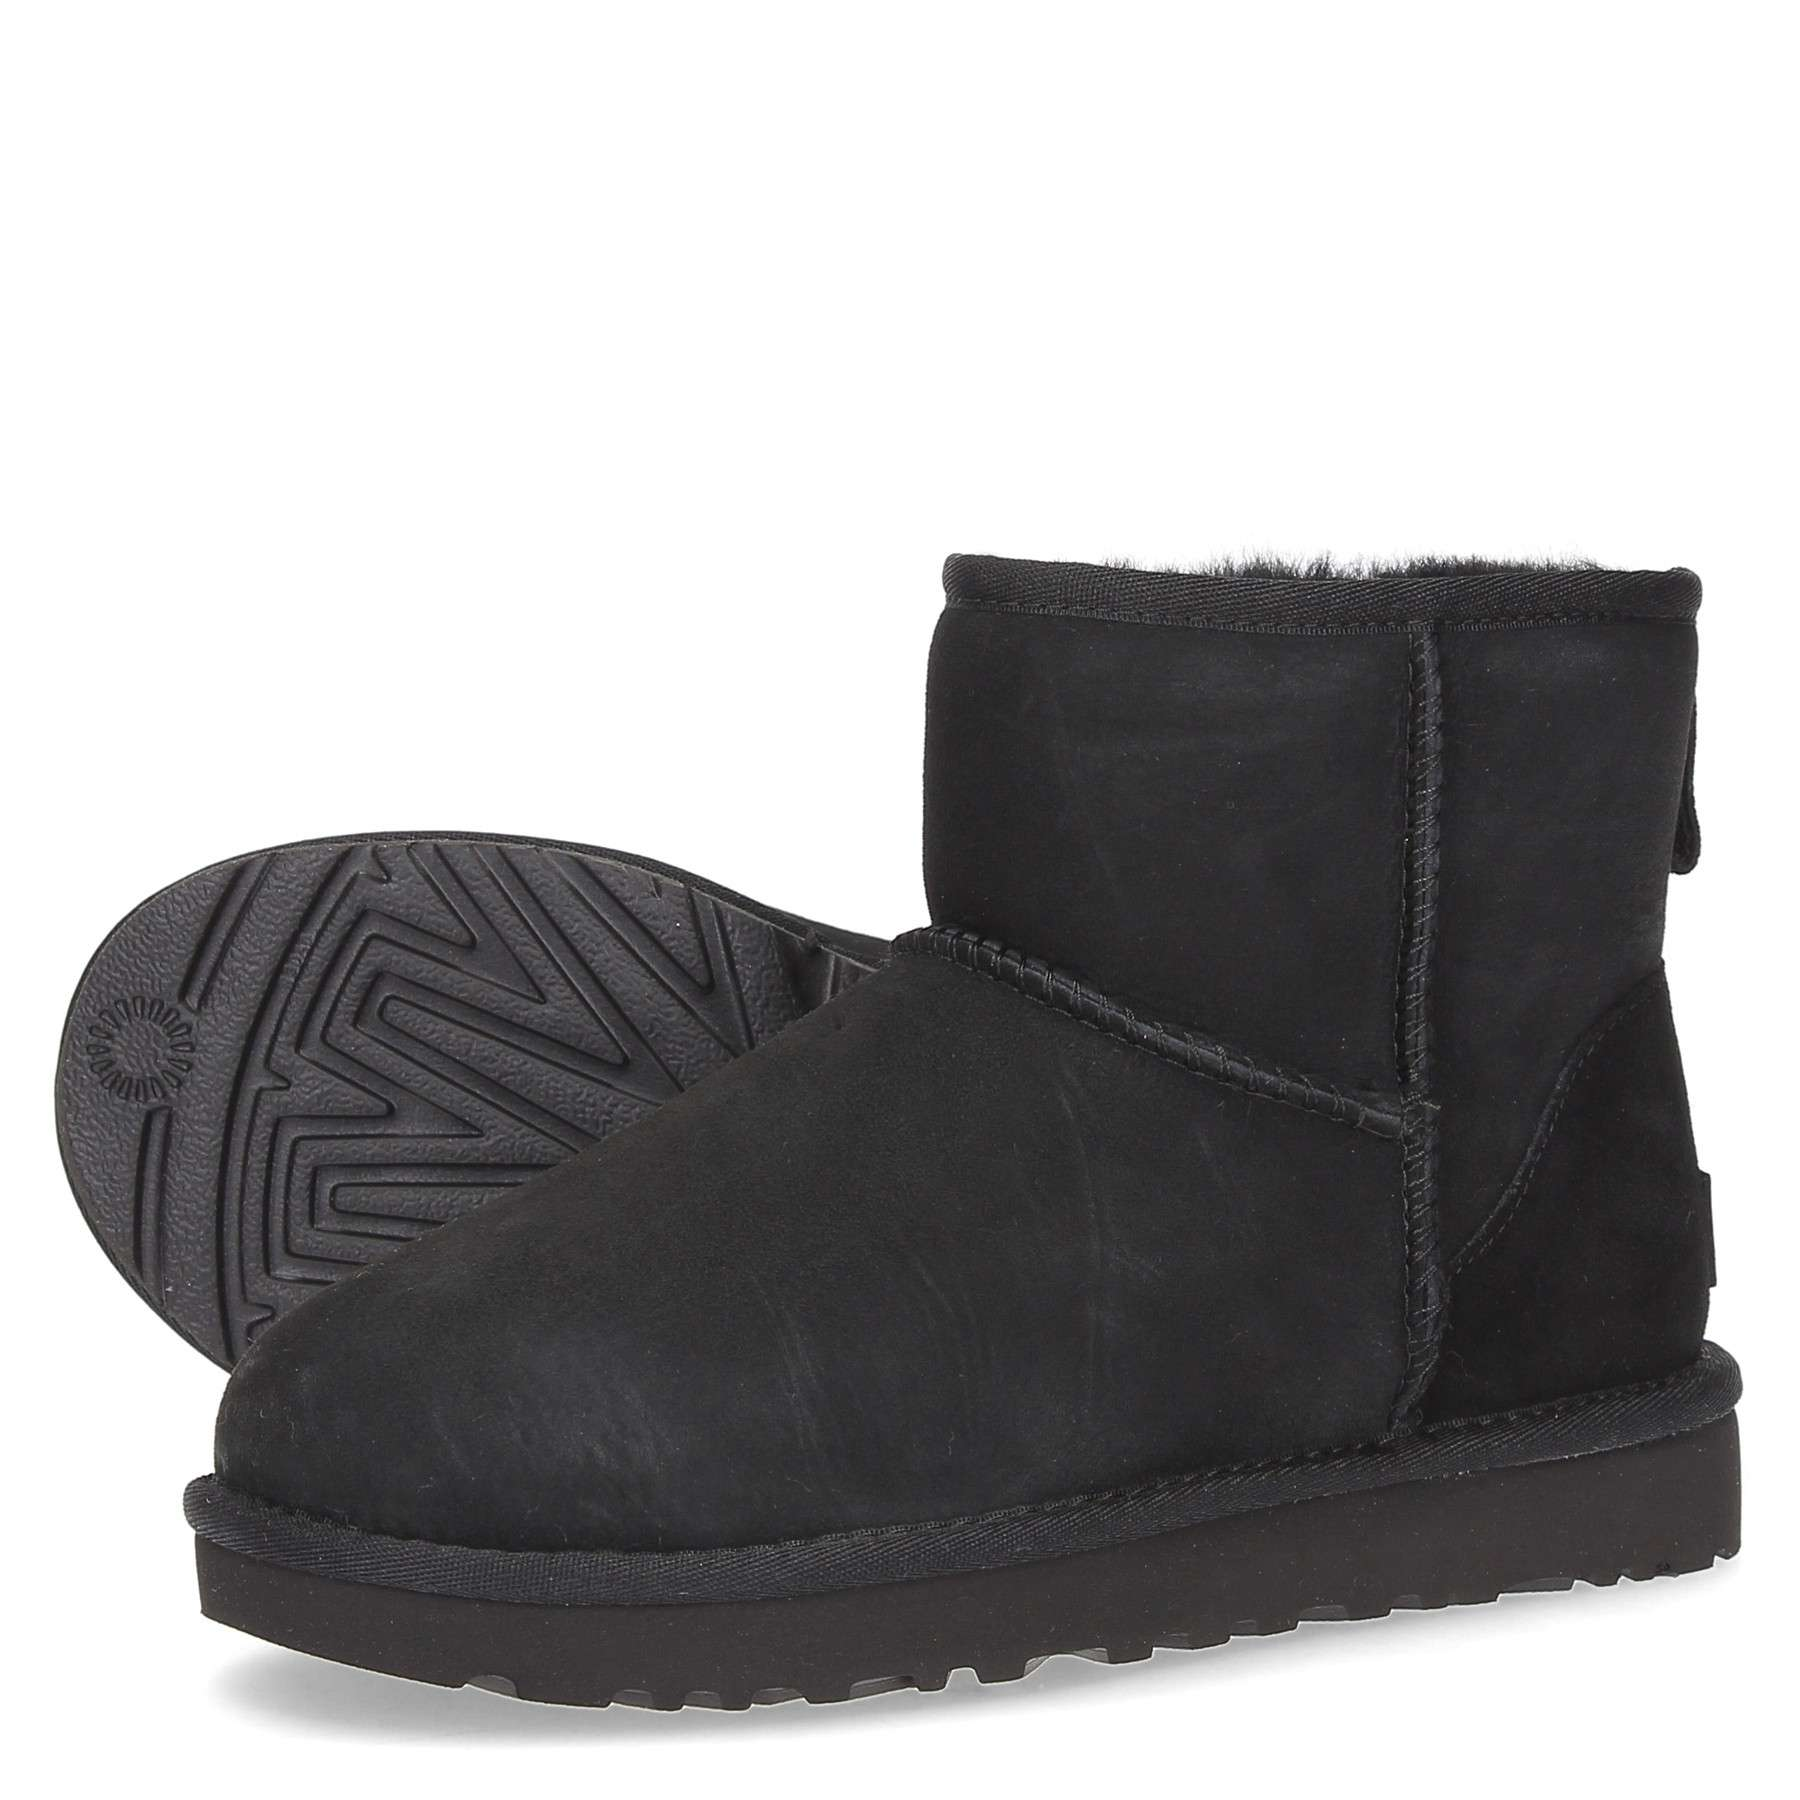 https://www.parmax.com/media/catalog/product/a/i/AI-outlet_parmax.-stivaletto-donna-Ugg-1016222-D_1.jpg